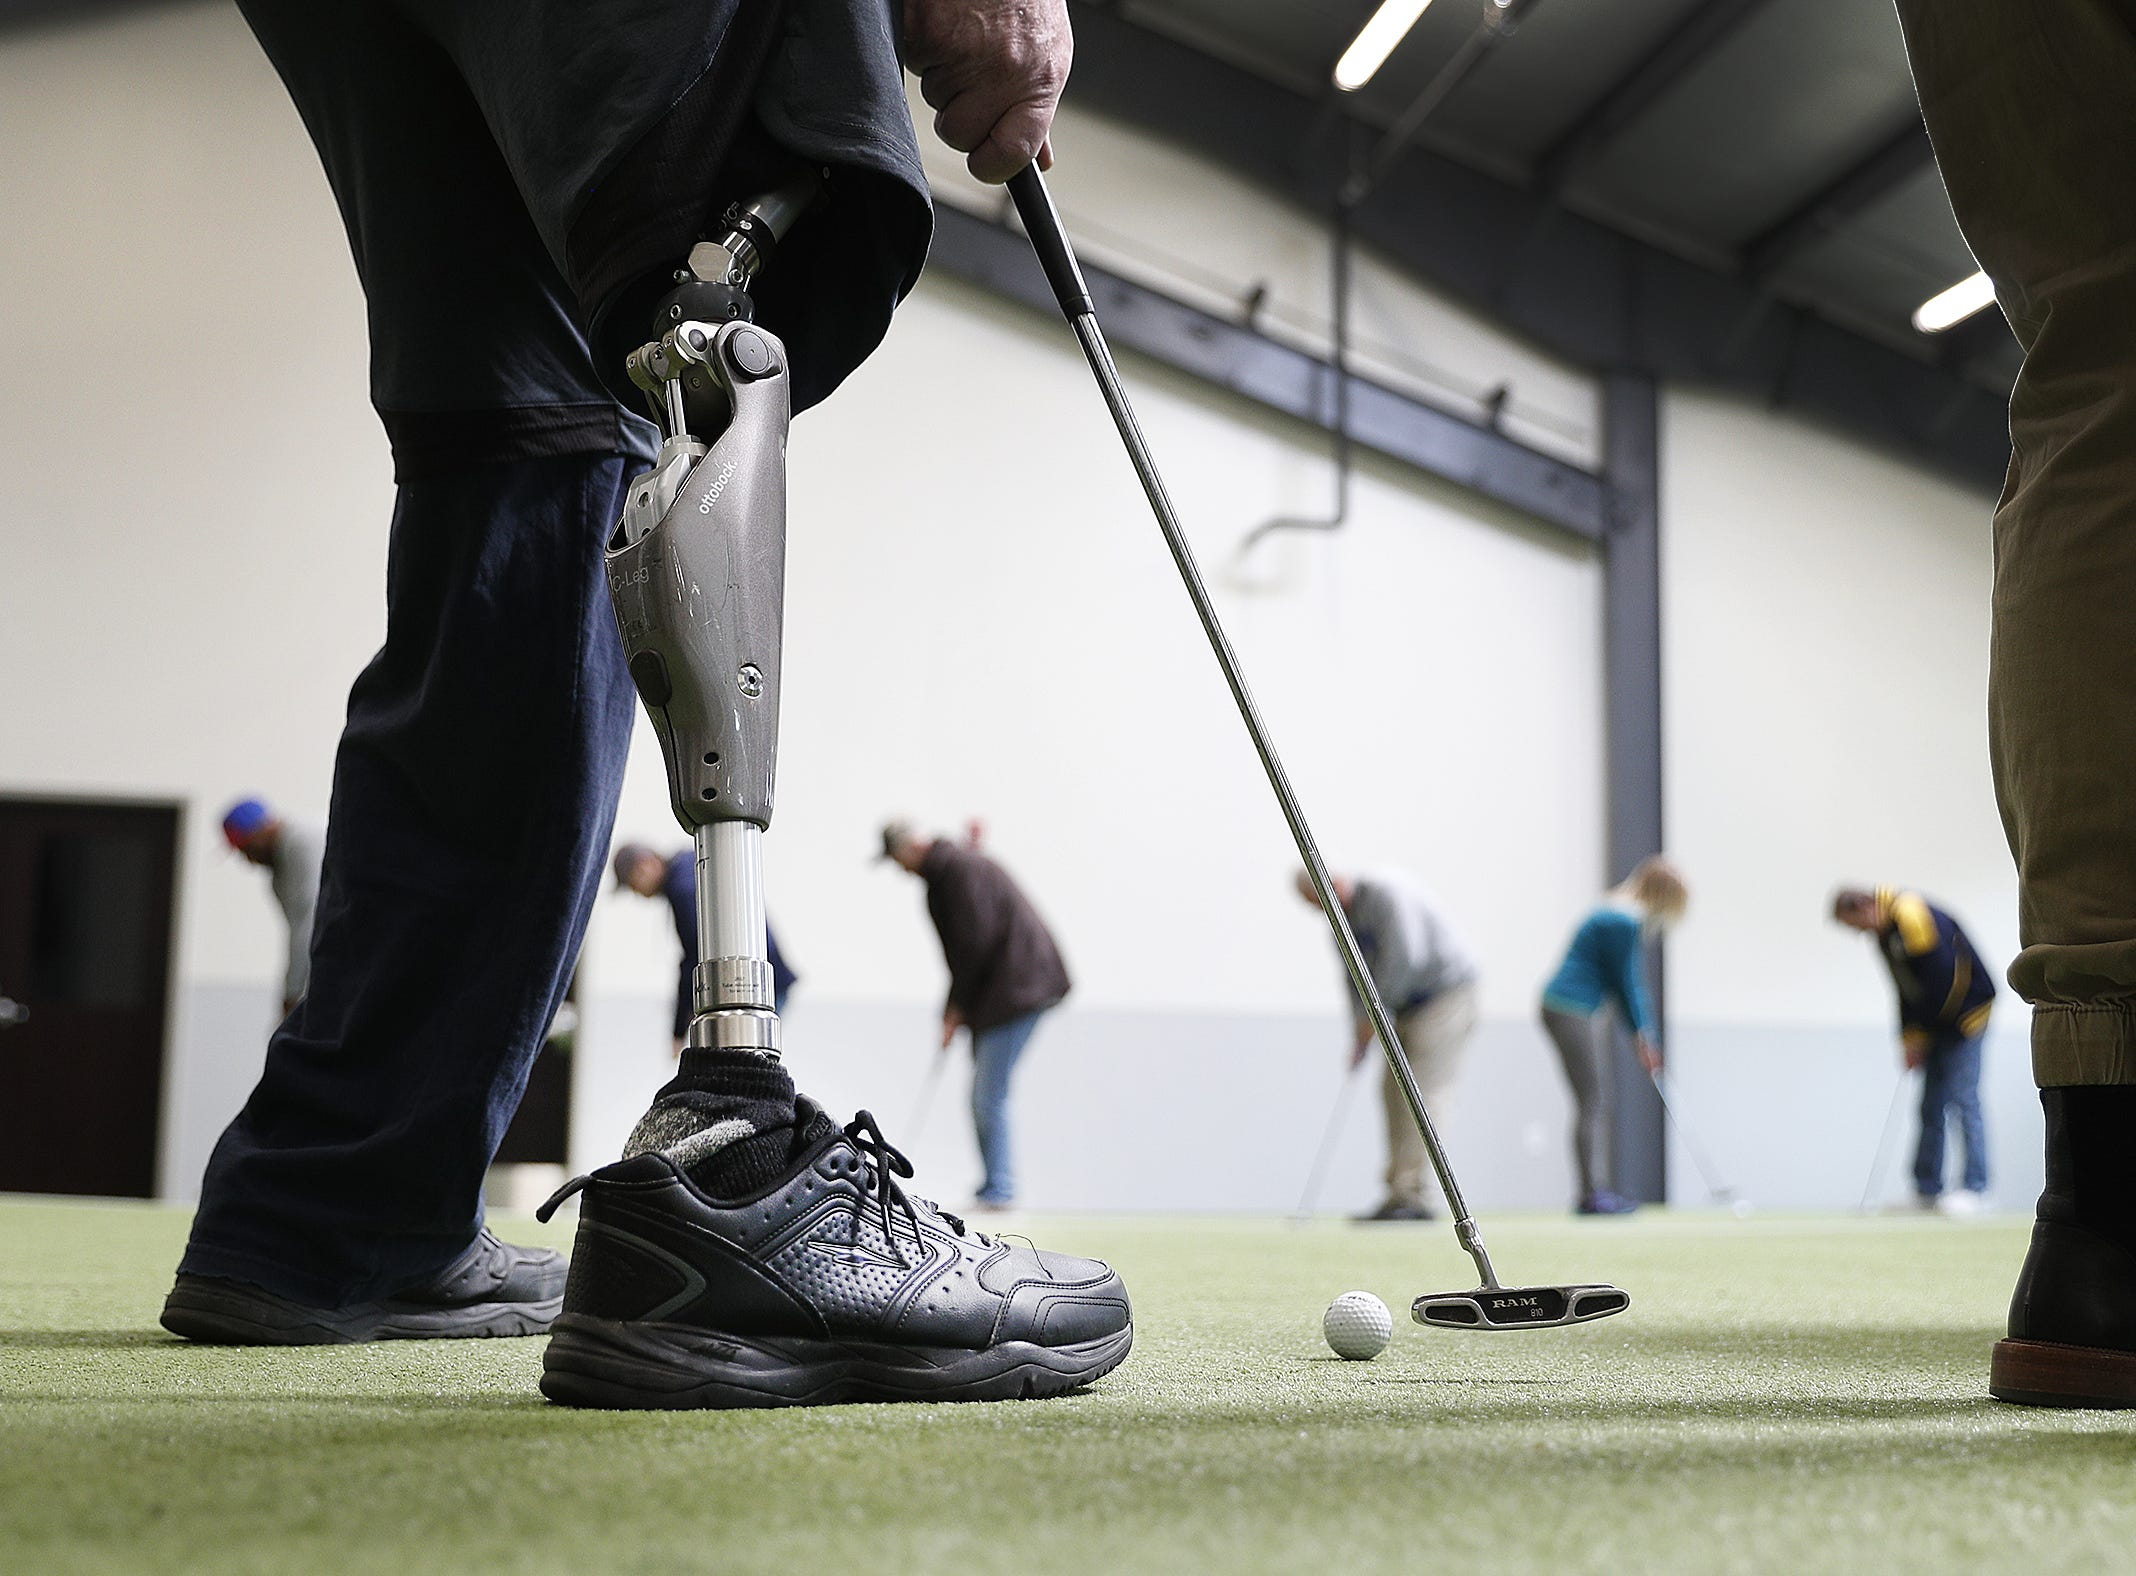 Veterans work on their putting speeds on the putting green at the PGA Hope program at the Highland Golf and Country Club Wednesday April 18, 2018. The PGA Hope program helps veterans get back into the swing of golfing with the help from many local golf professionals and courses.